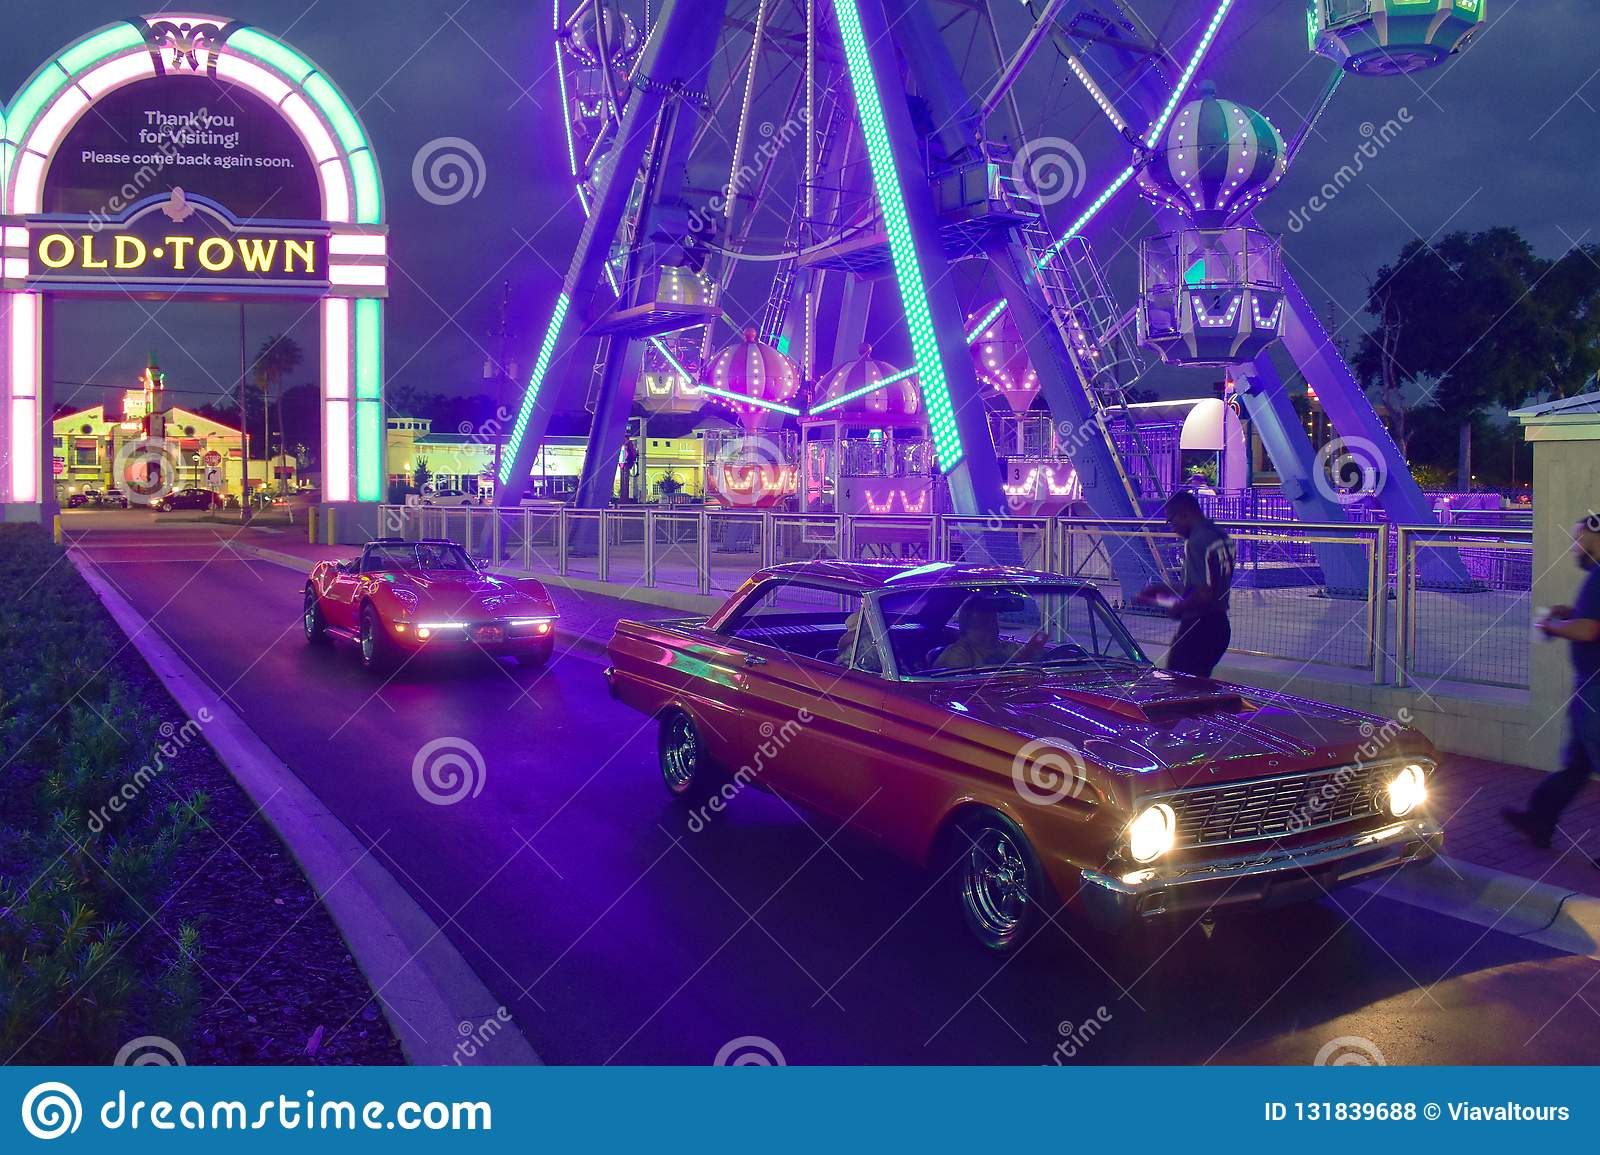 Nice Old Cars Registering To Enter Saturday Nite Classic Car Show And Cruise. At Old Town Ki Editorial Stock Photo - Image of graphic. area: 131839688